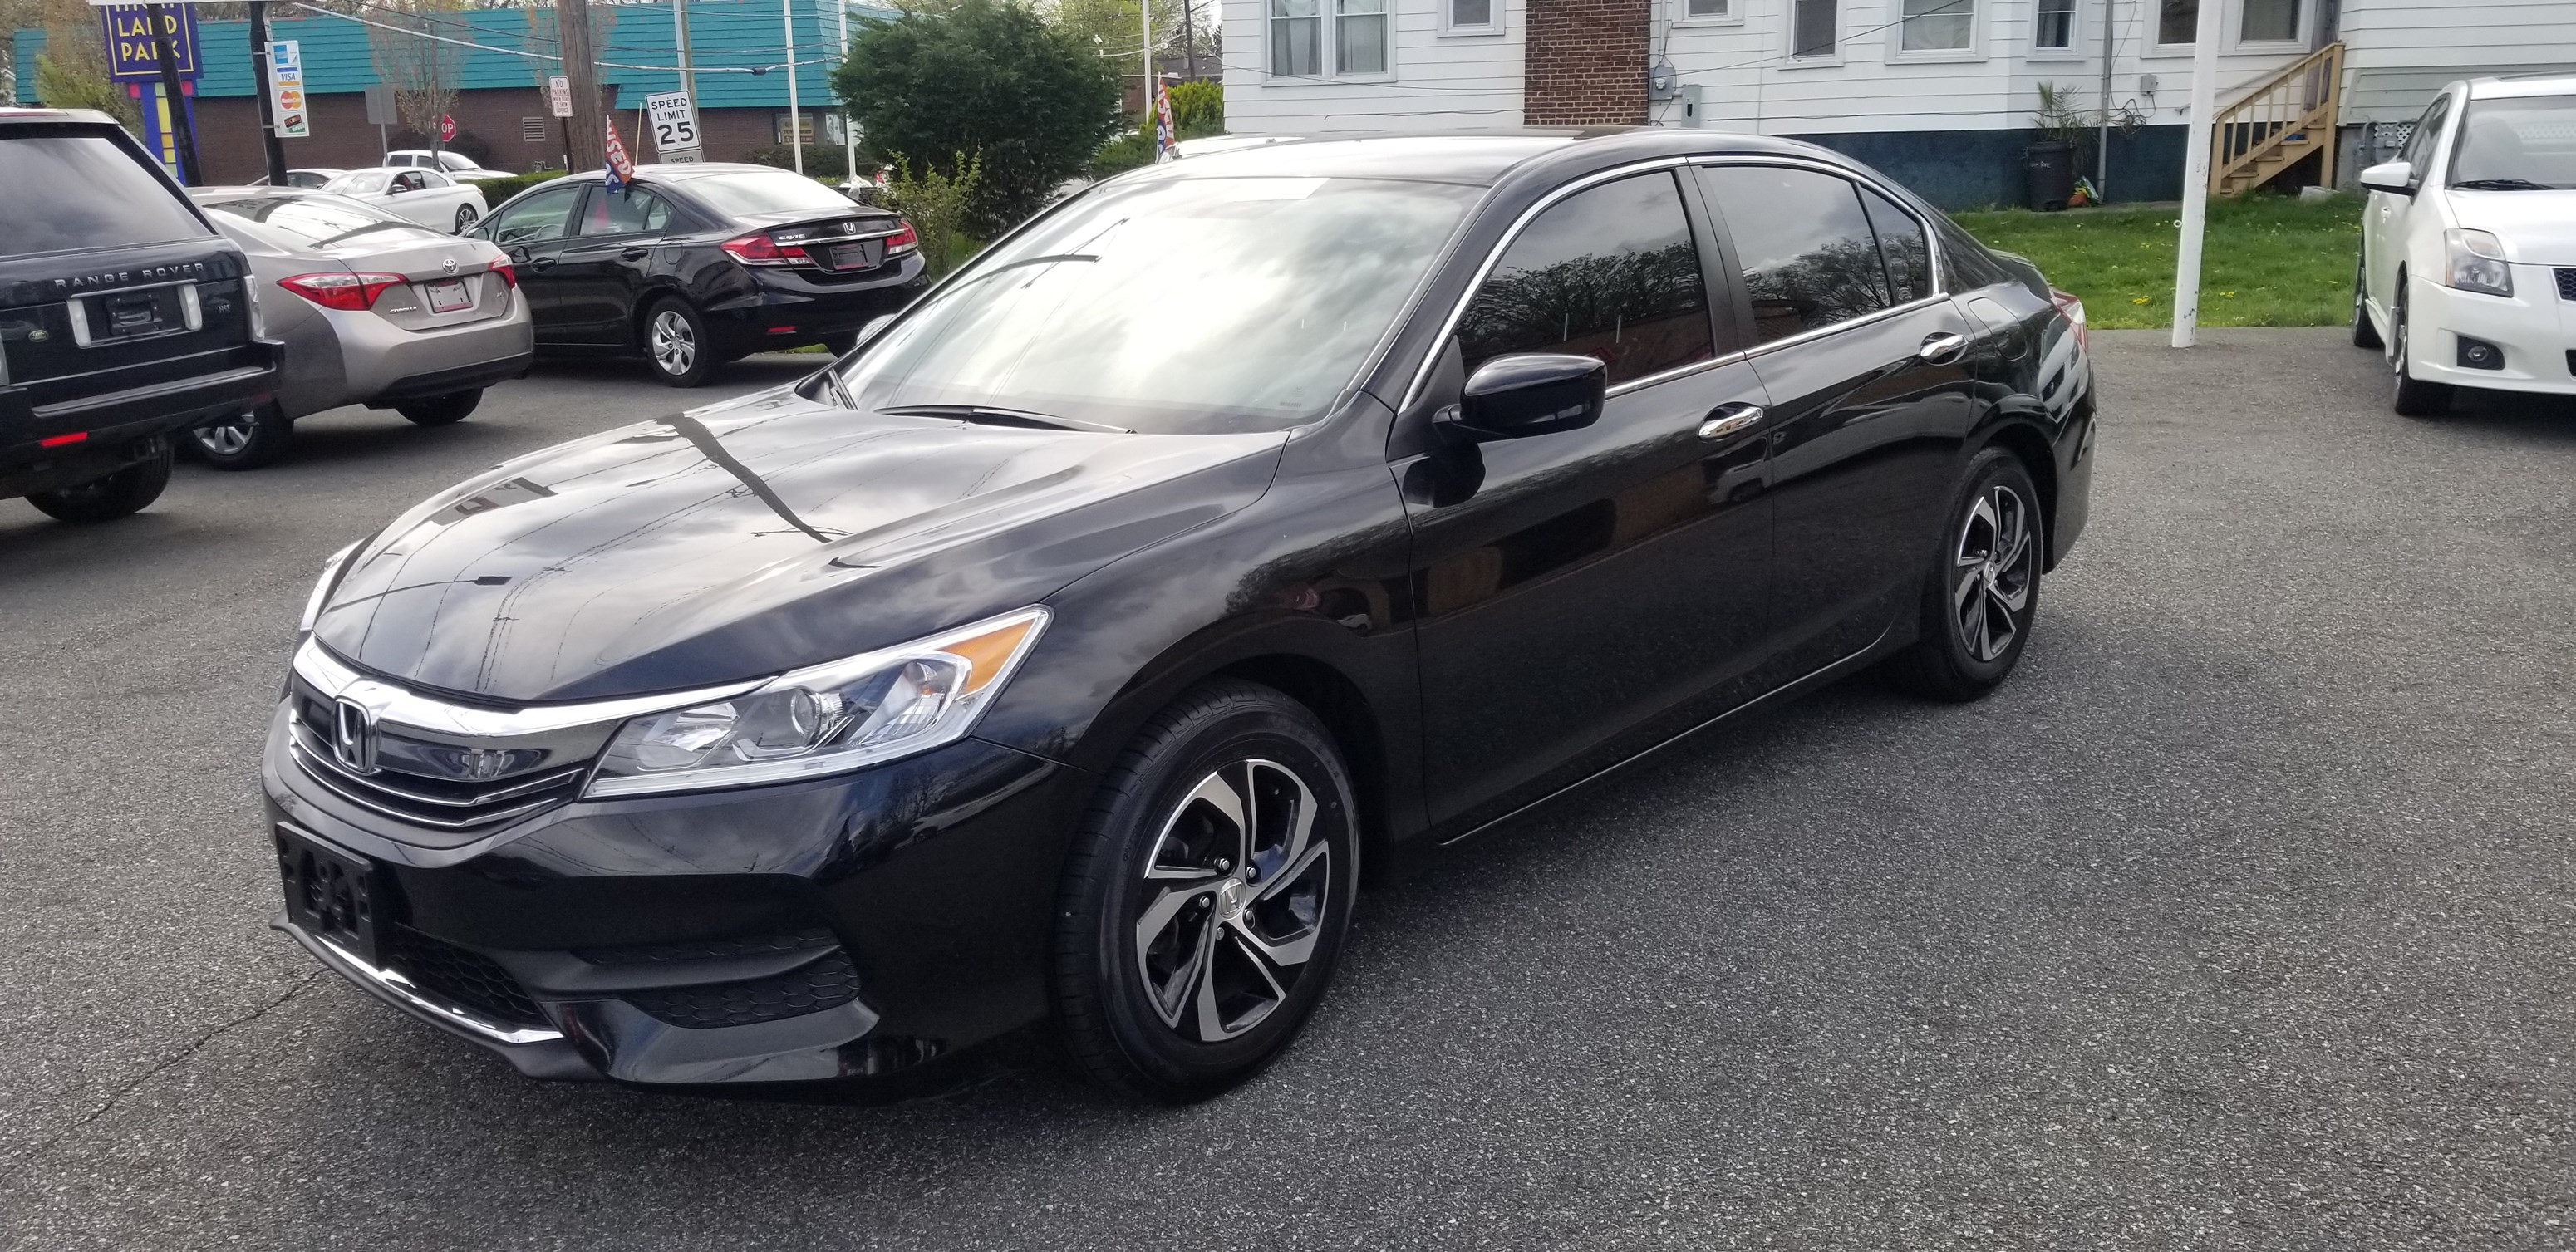 2016 honda accord lx 2 4l 4 cylinder clean carfax 1 owner only 41k miles back up camera bluetooth under honda warranty